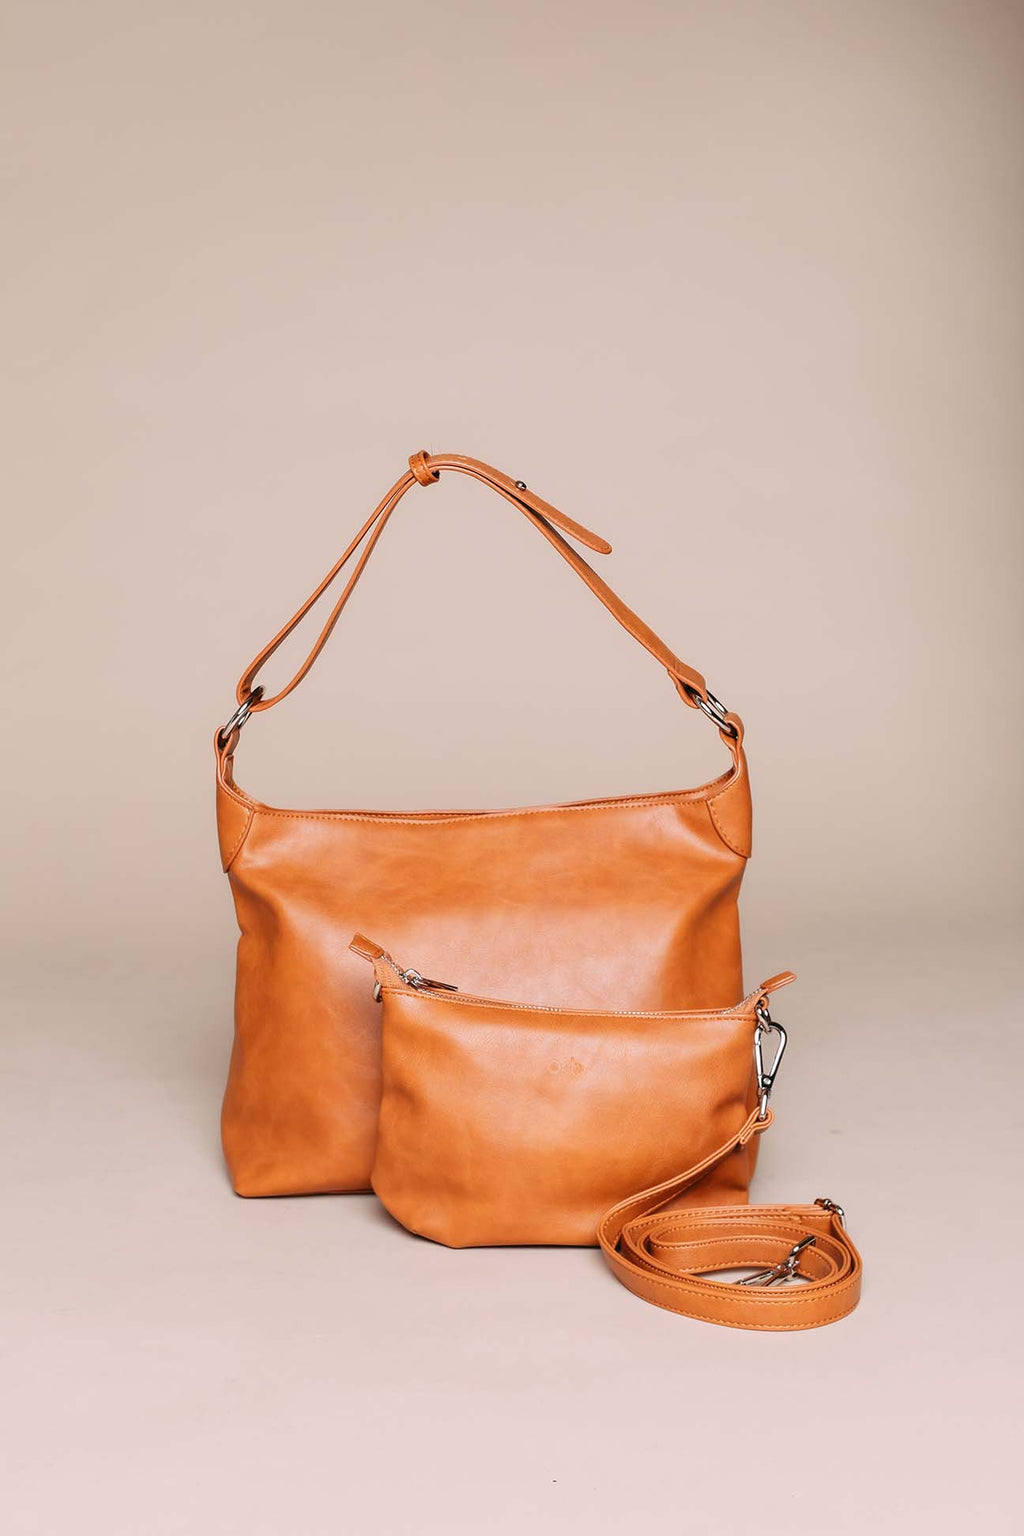 Mahogany - 2-in-1 Bag Camel